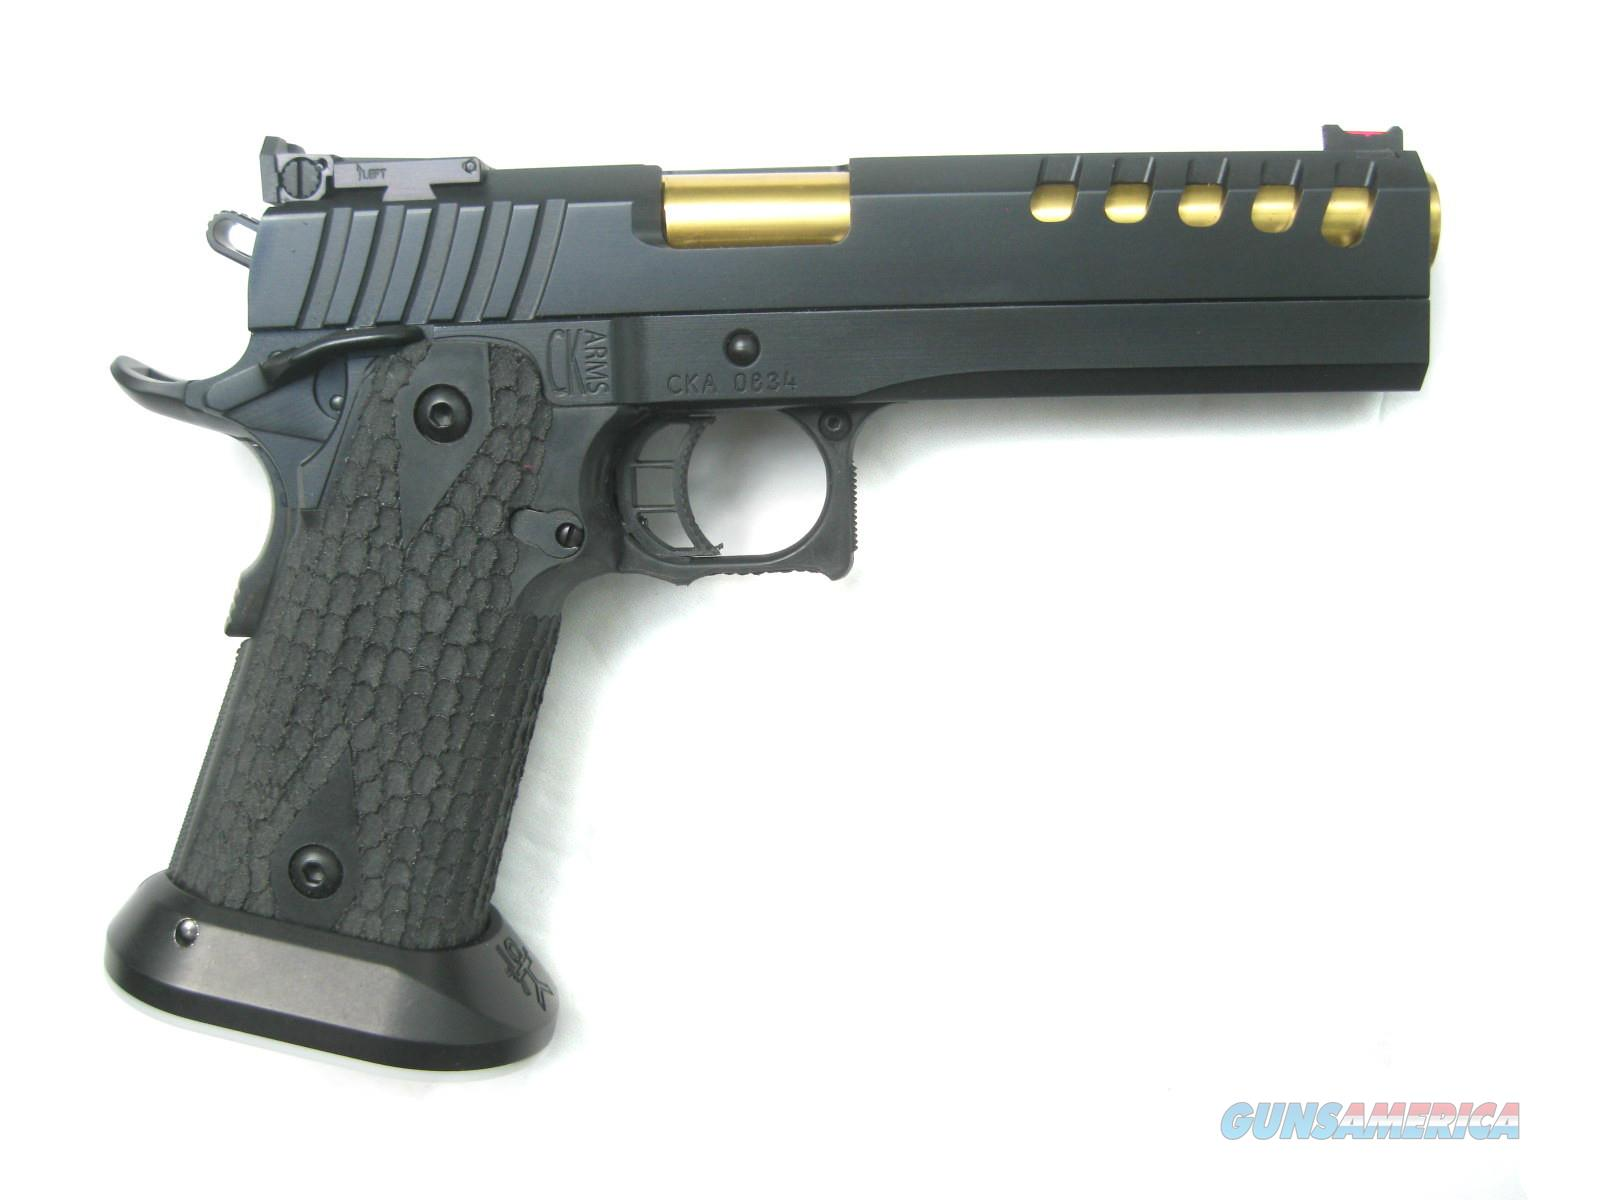 CK Arms Custom Thunder Series LIMITED 9mm Black PVD Tri-Top Lightened Slide FO *NEW*  Guns > Pistols > 1911 Pistol Copies (non-Colt)